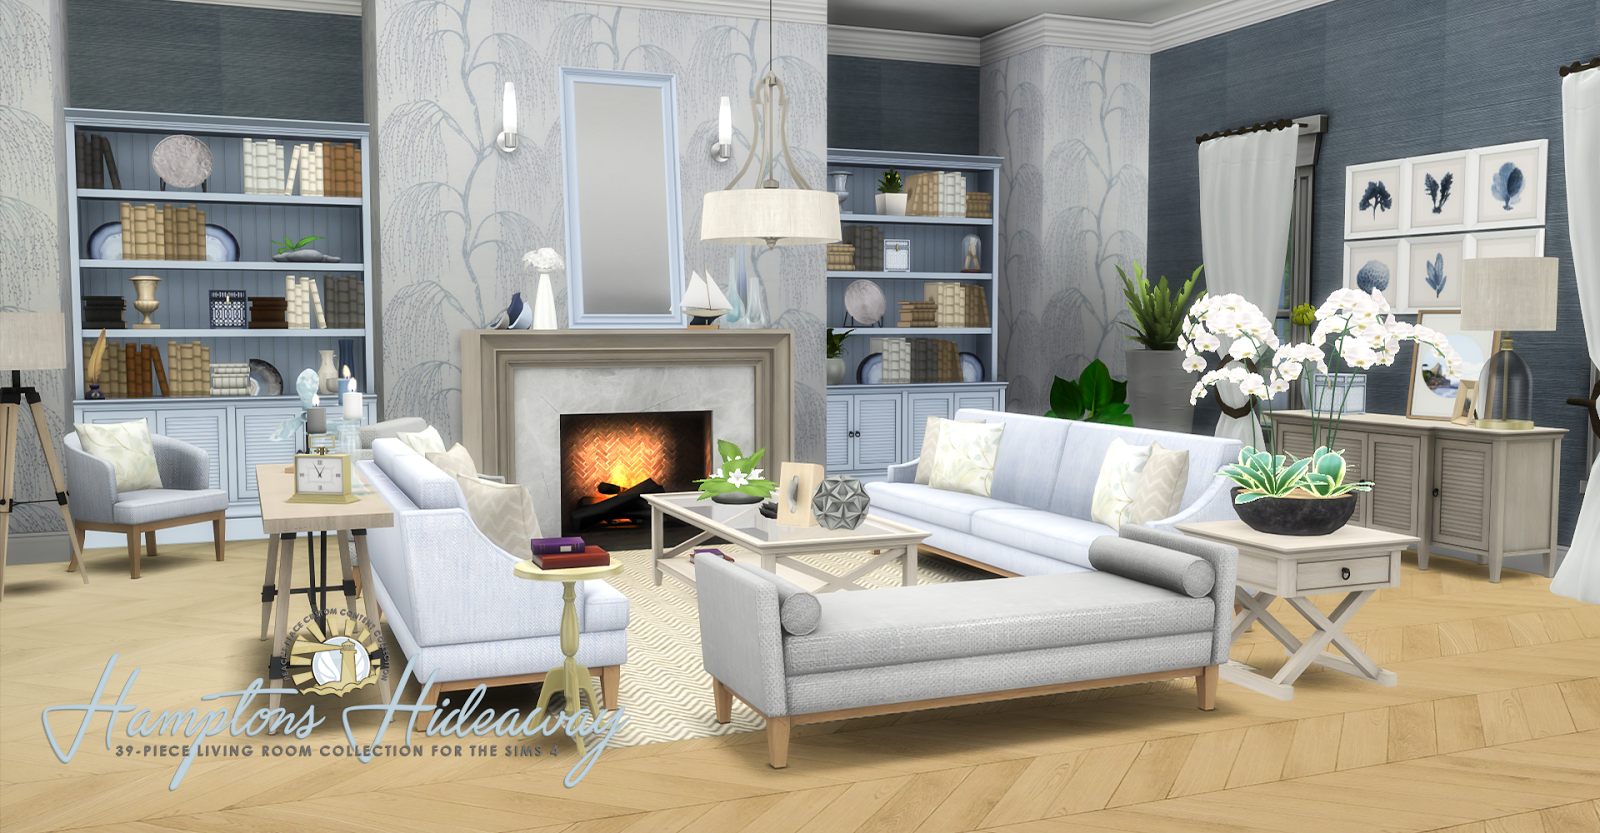 My Sims 4 Blog Updated Hamptons Hideaway Living Room Set By Peacemaker Ic